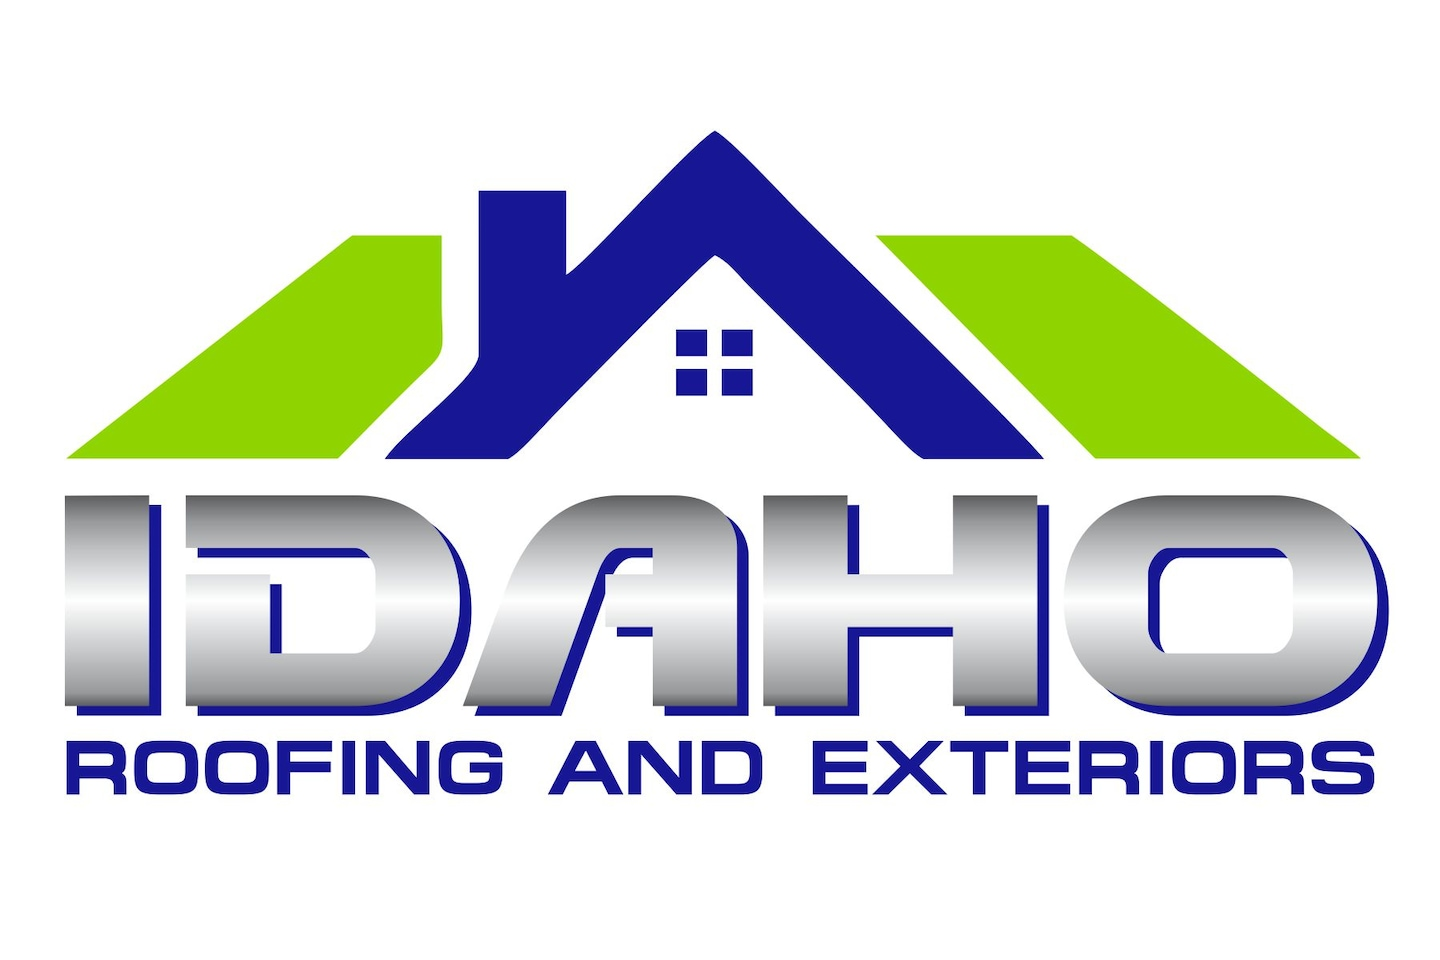 Idaho Roofing and Exteriors